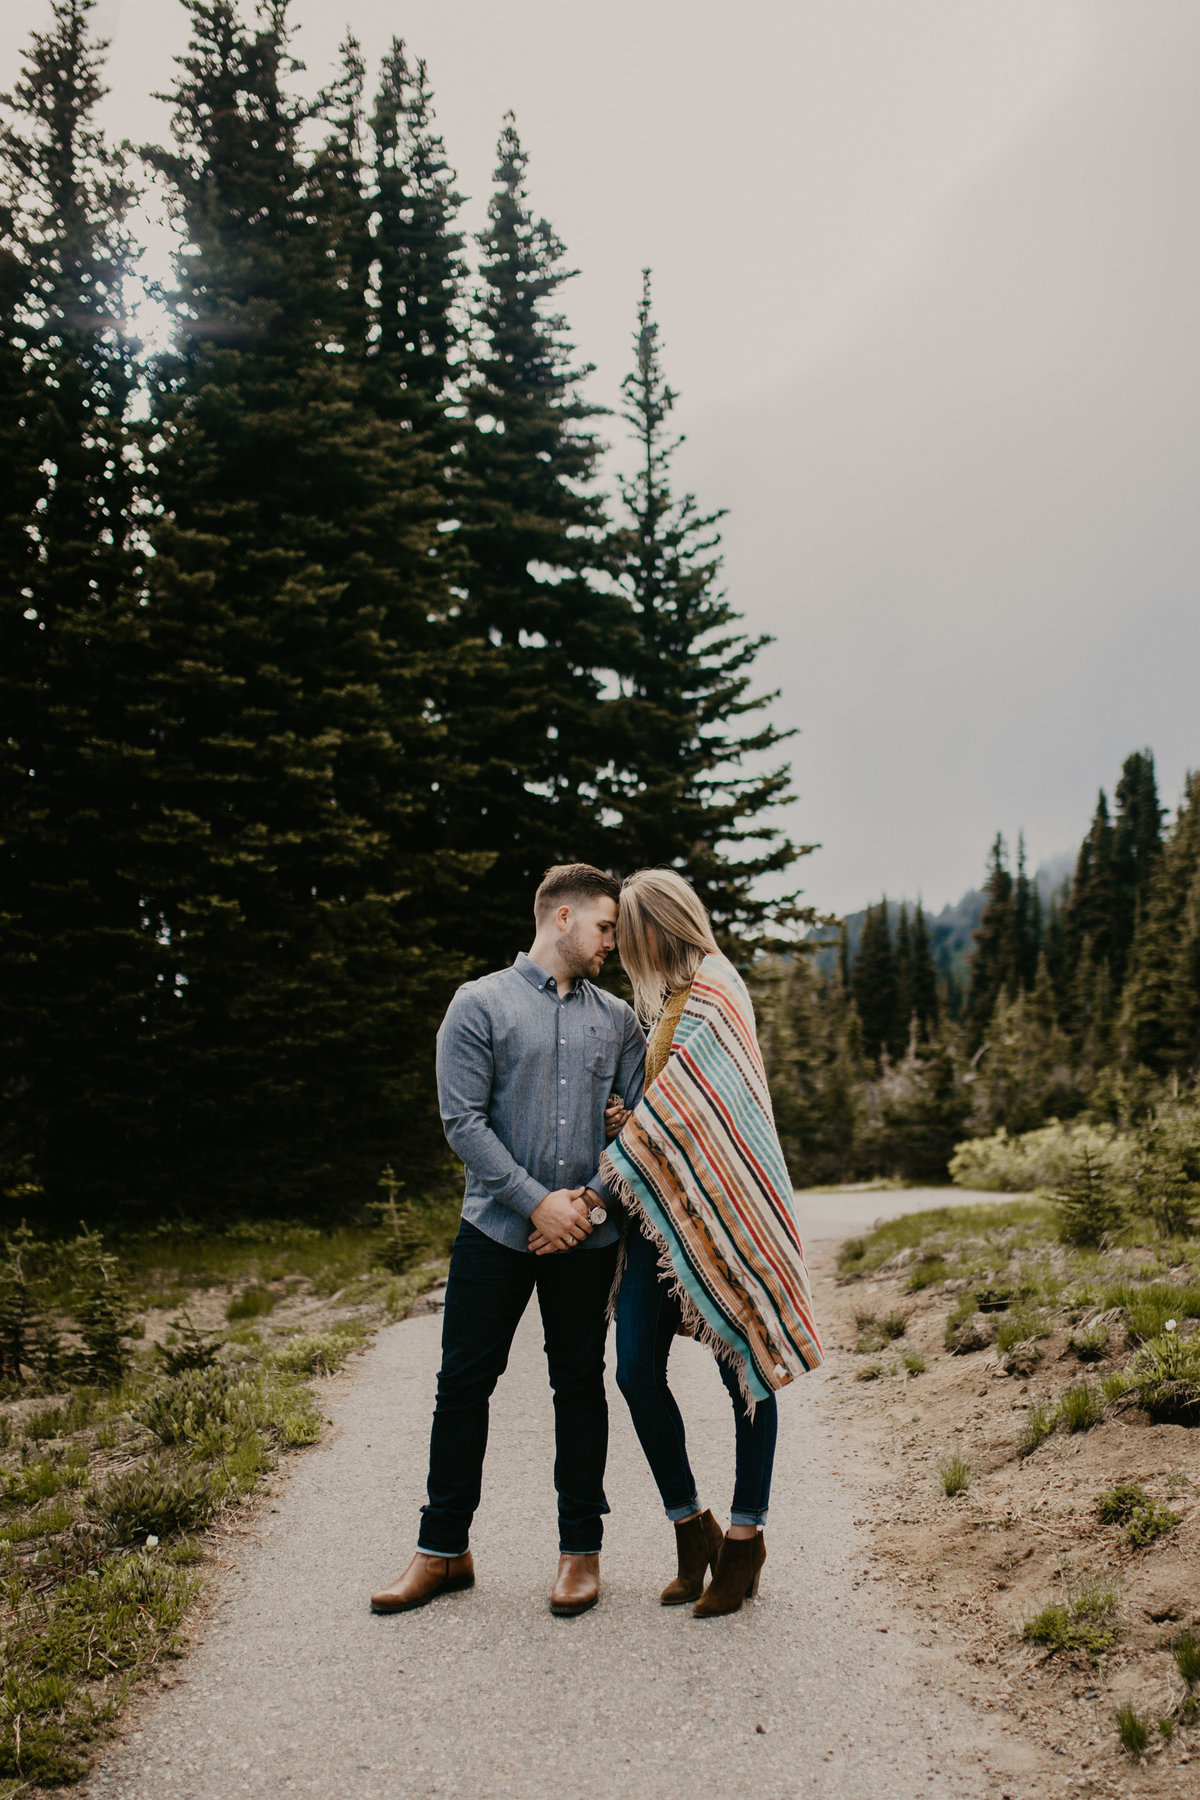 Marnie_Cornell_Photography_Engagement_Mount_Rainier_RK-72